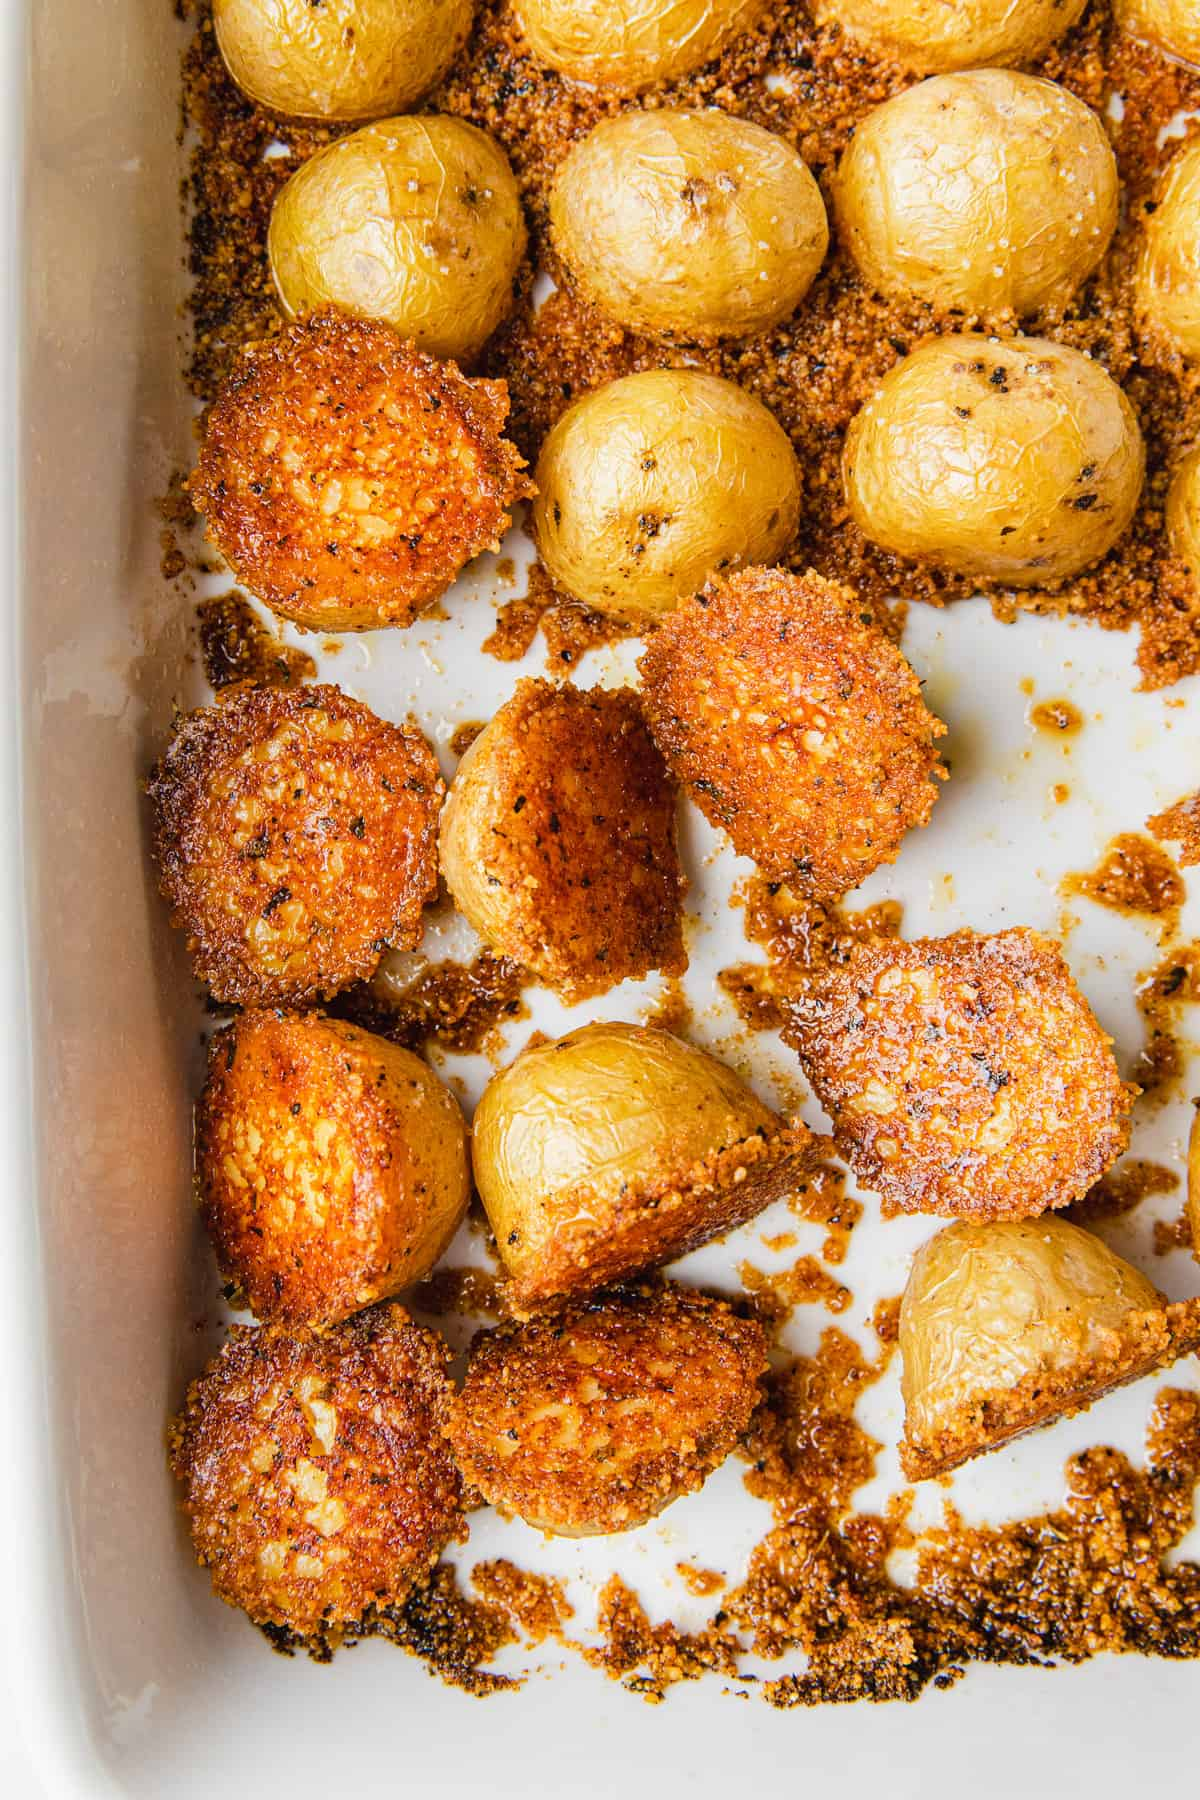 Cooked potatoes flipped over in a baking dish.